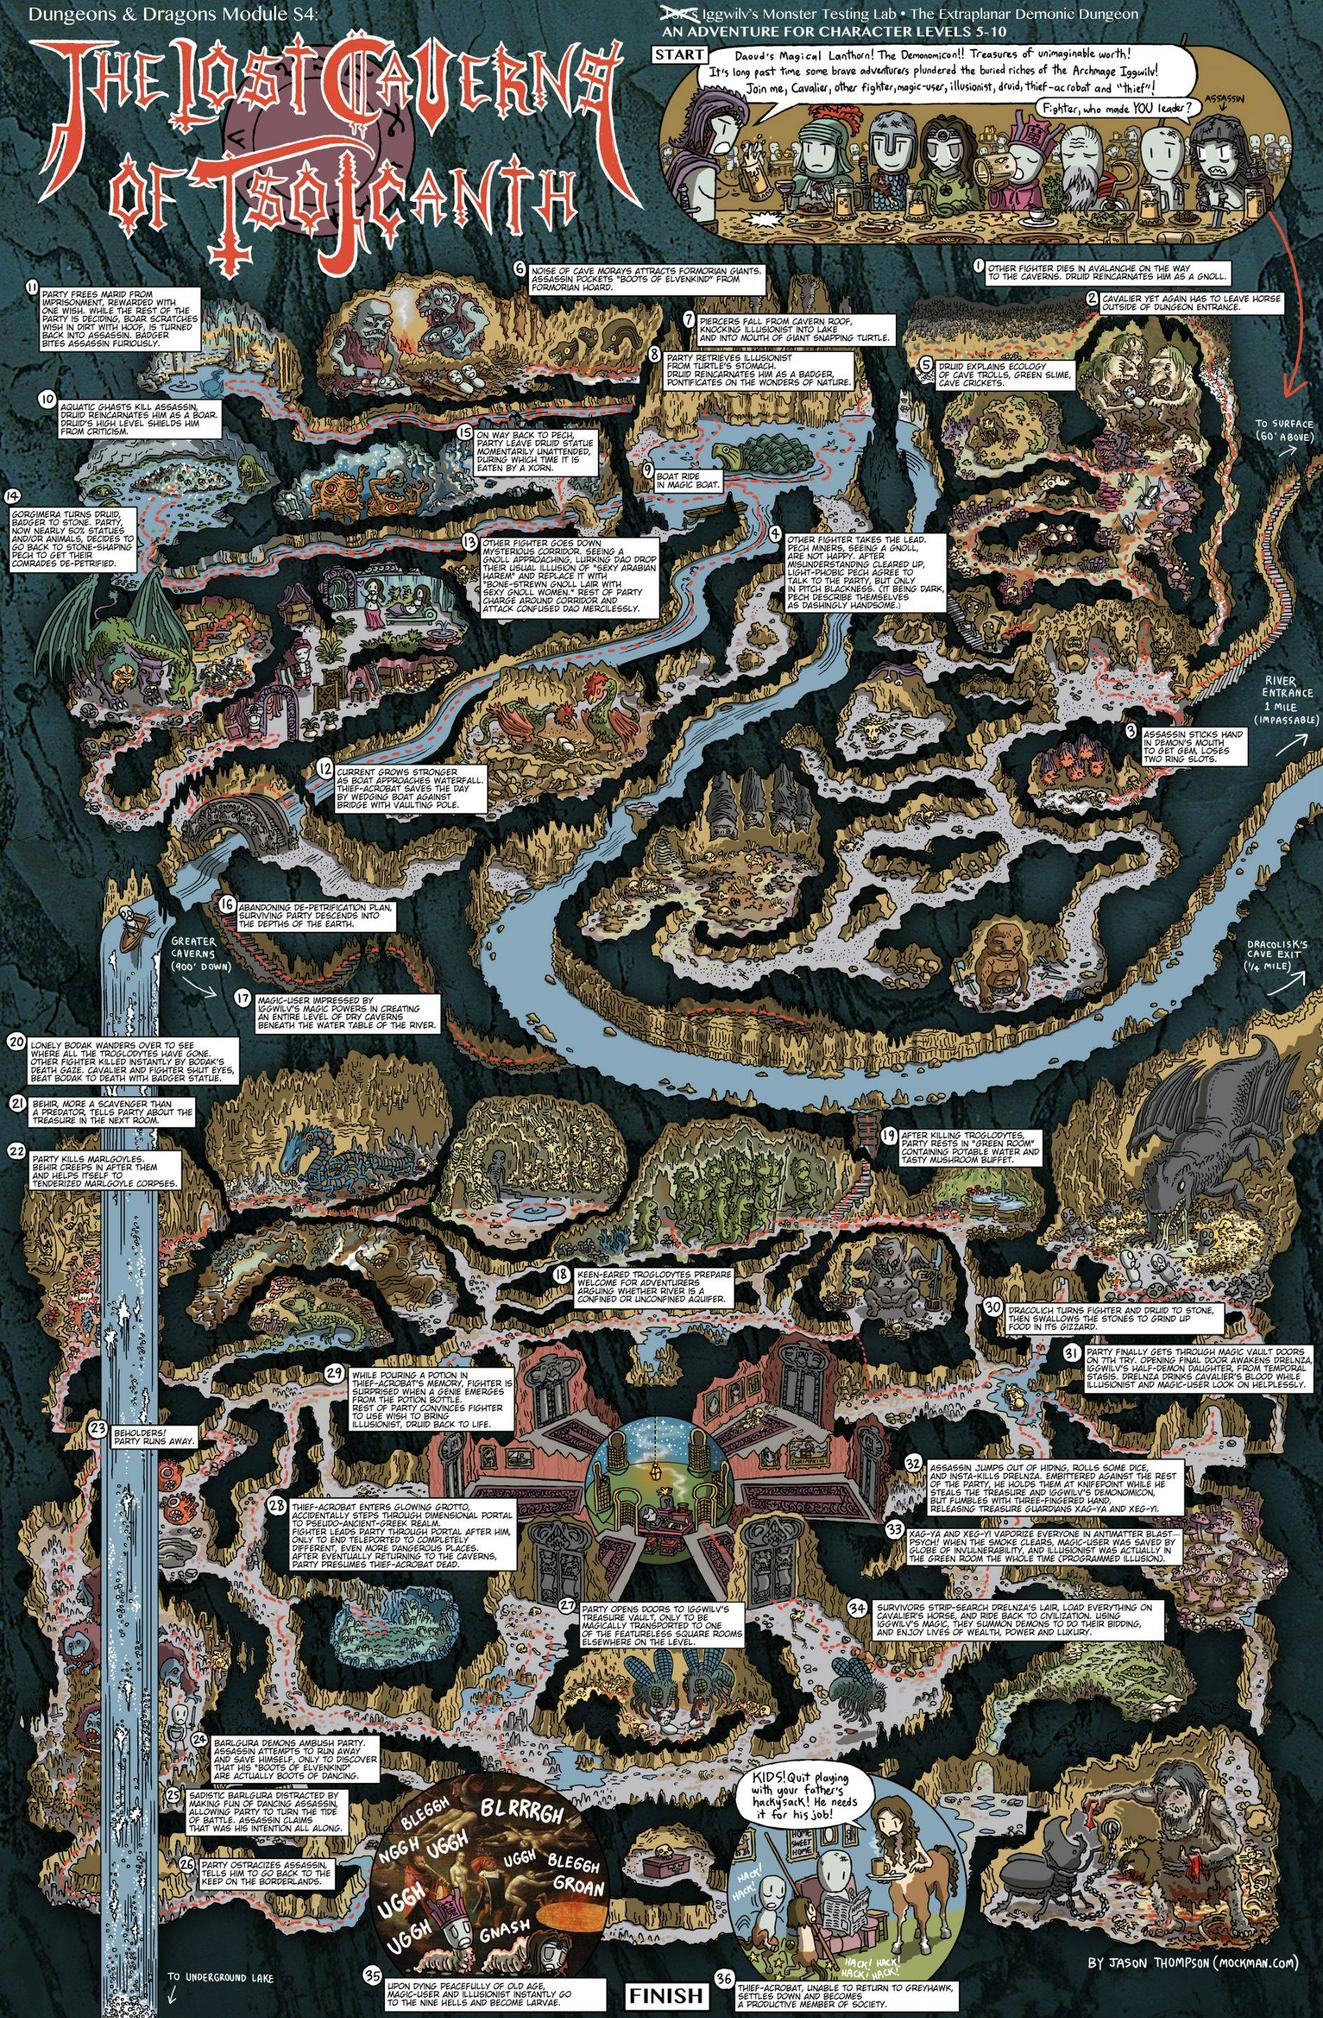 classic-dungeons-and-dragons-walkthrough-maps-2